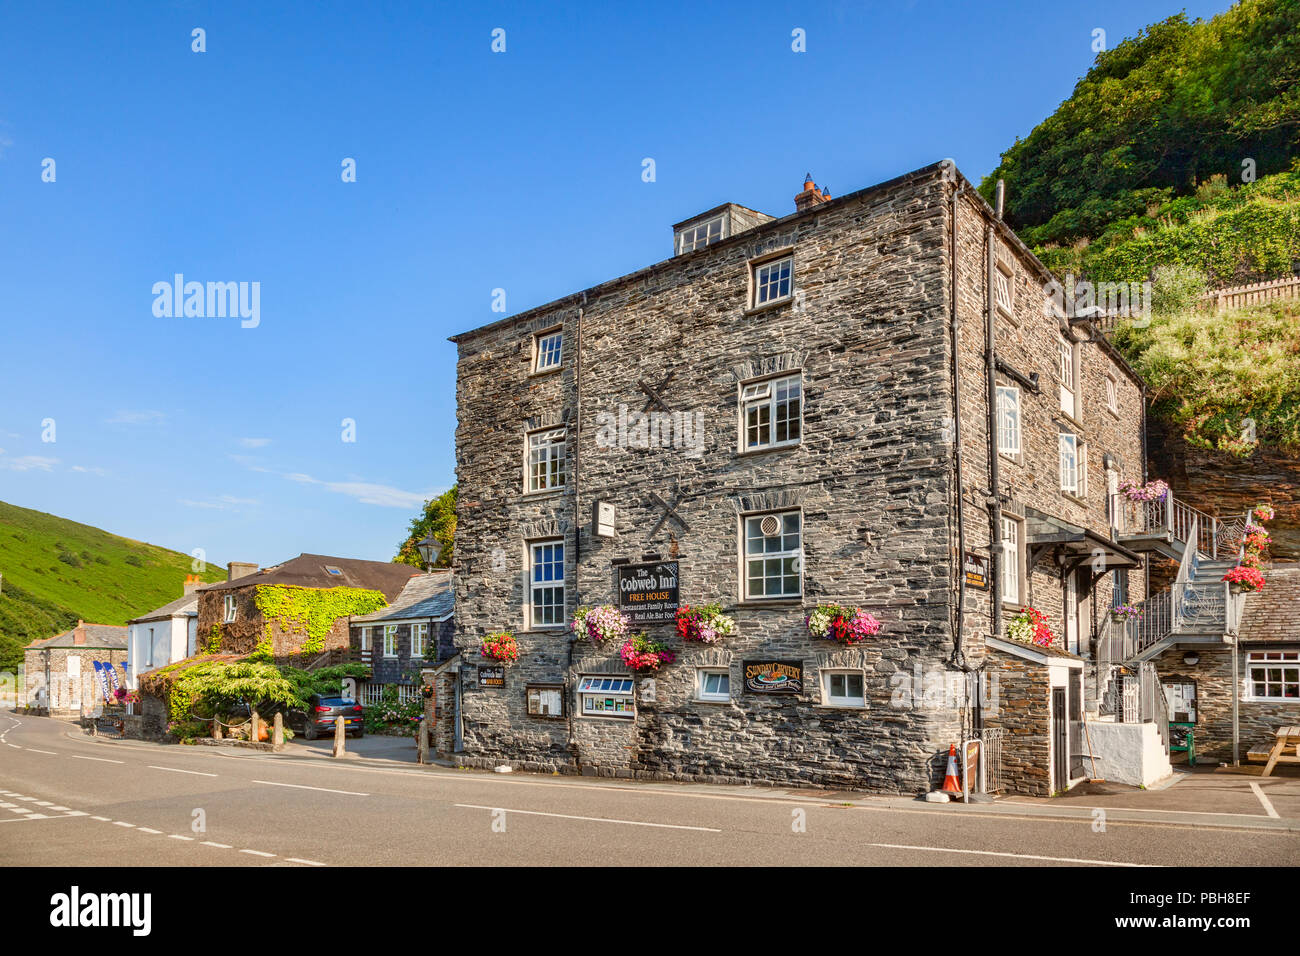 2 July 2018: Boscastle, Cornwall, UK: The Cobweb Inn, a Free House in the Cornish village. - Stock Image